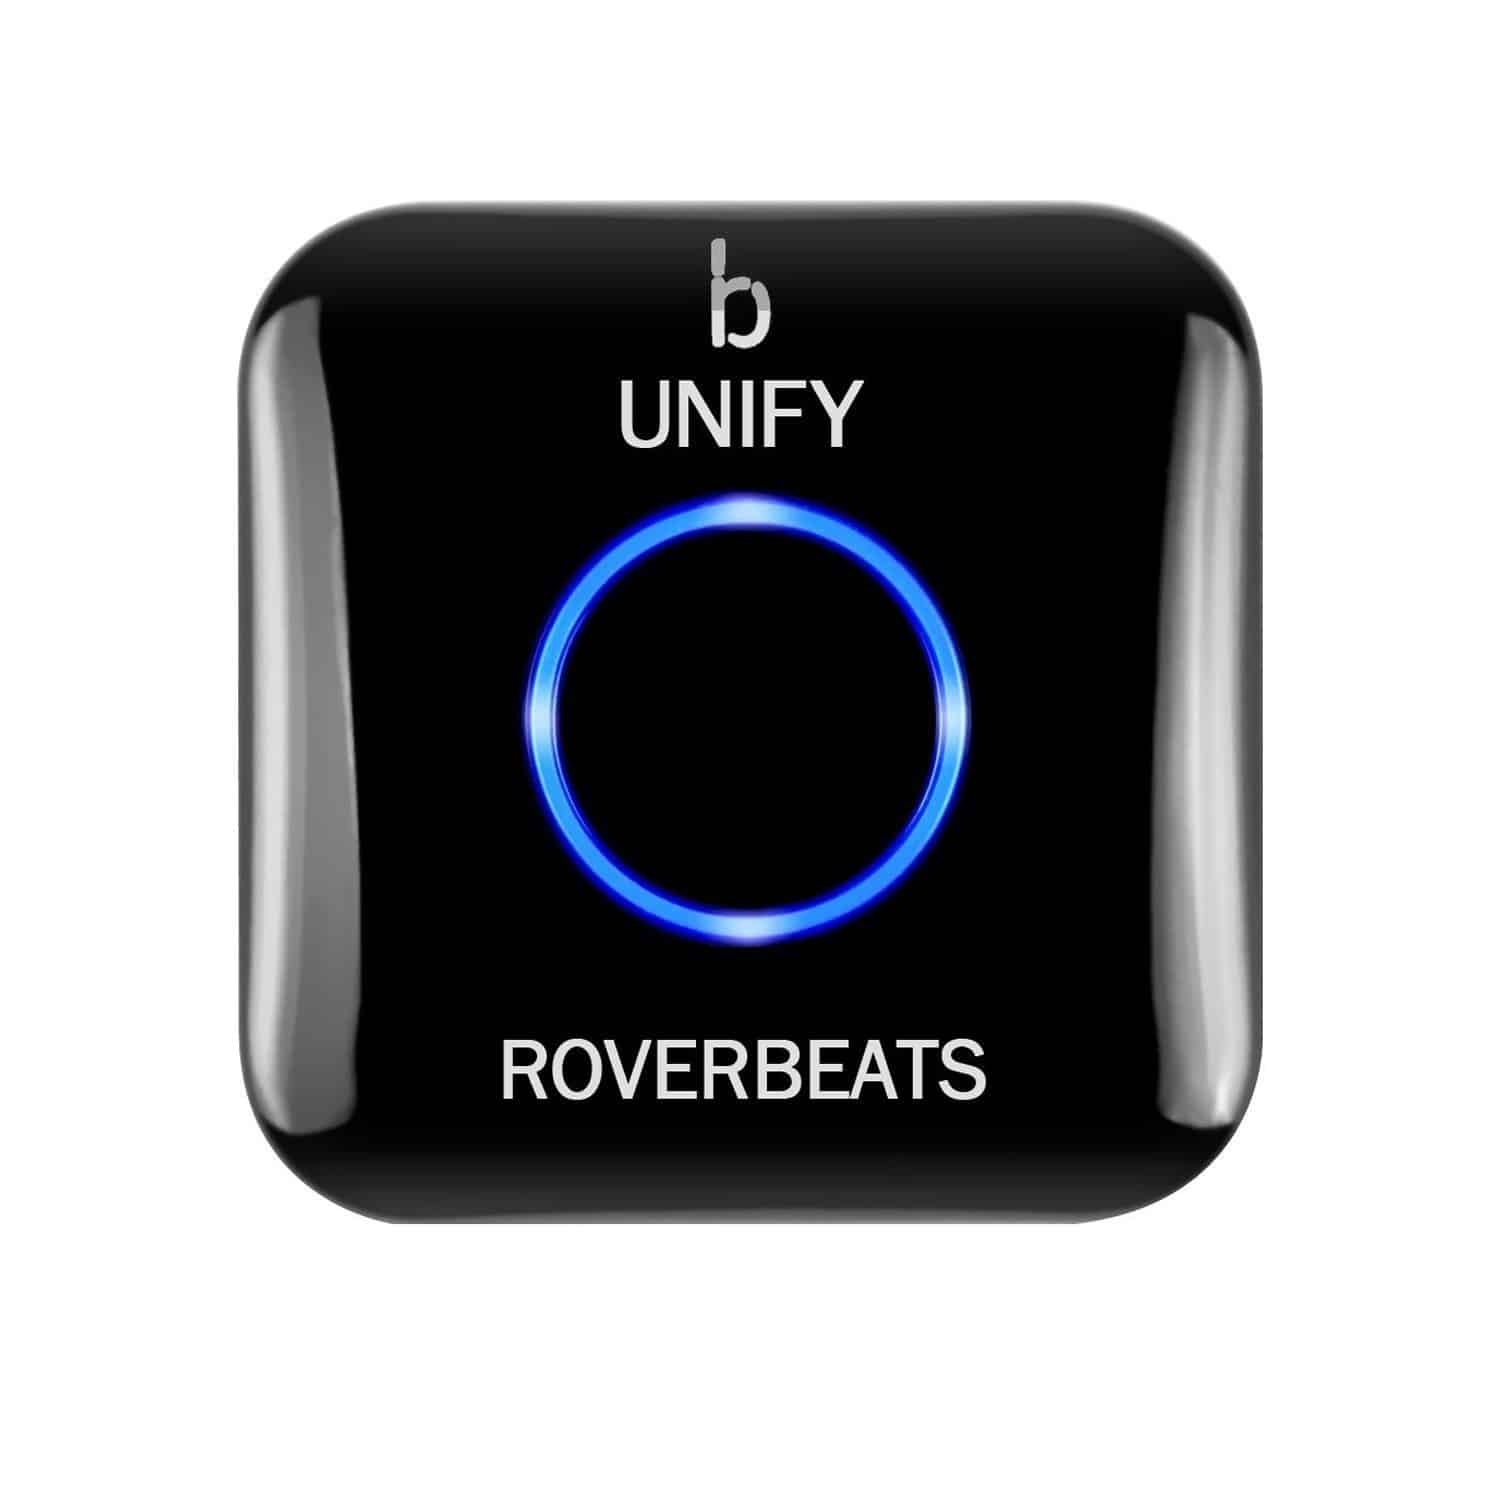 Unify Roverbeats Bluetooth Audio Receiver by Etekcity